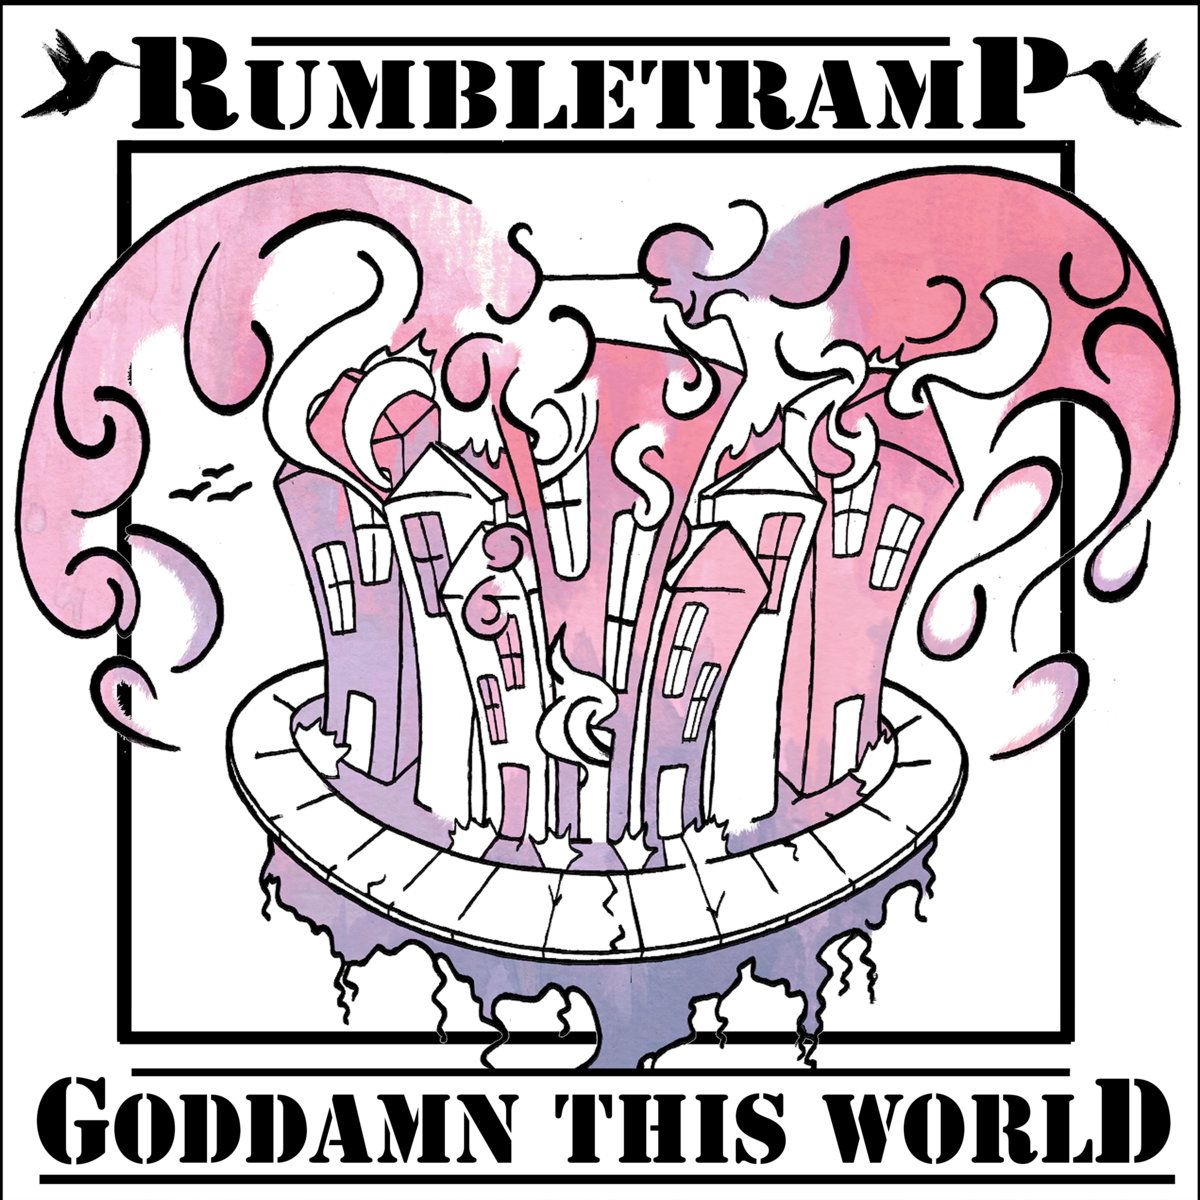 Goddamn This World | Rumbletramp